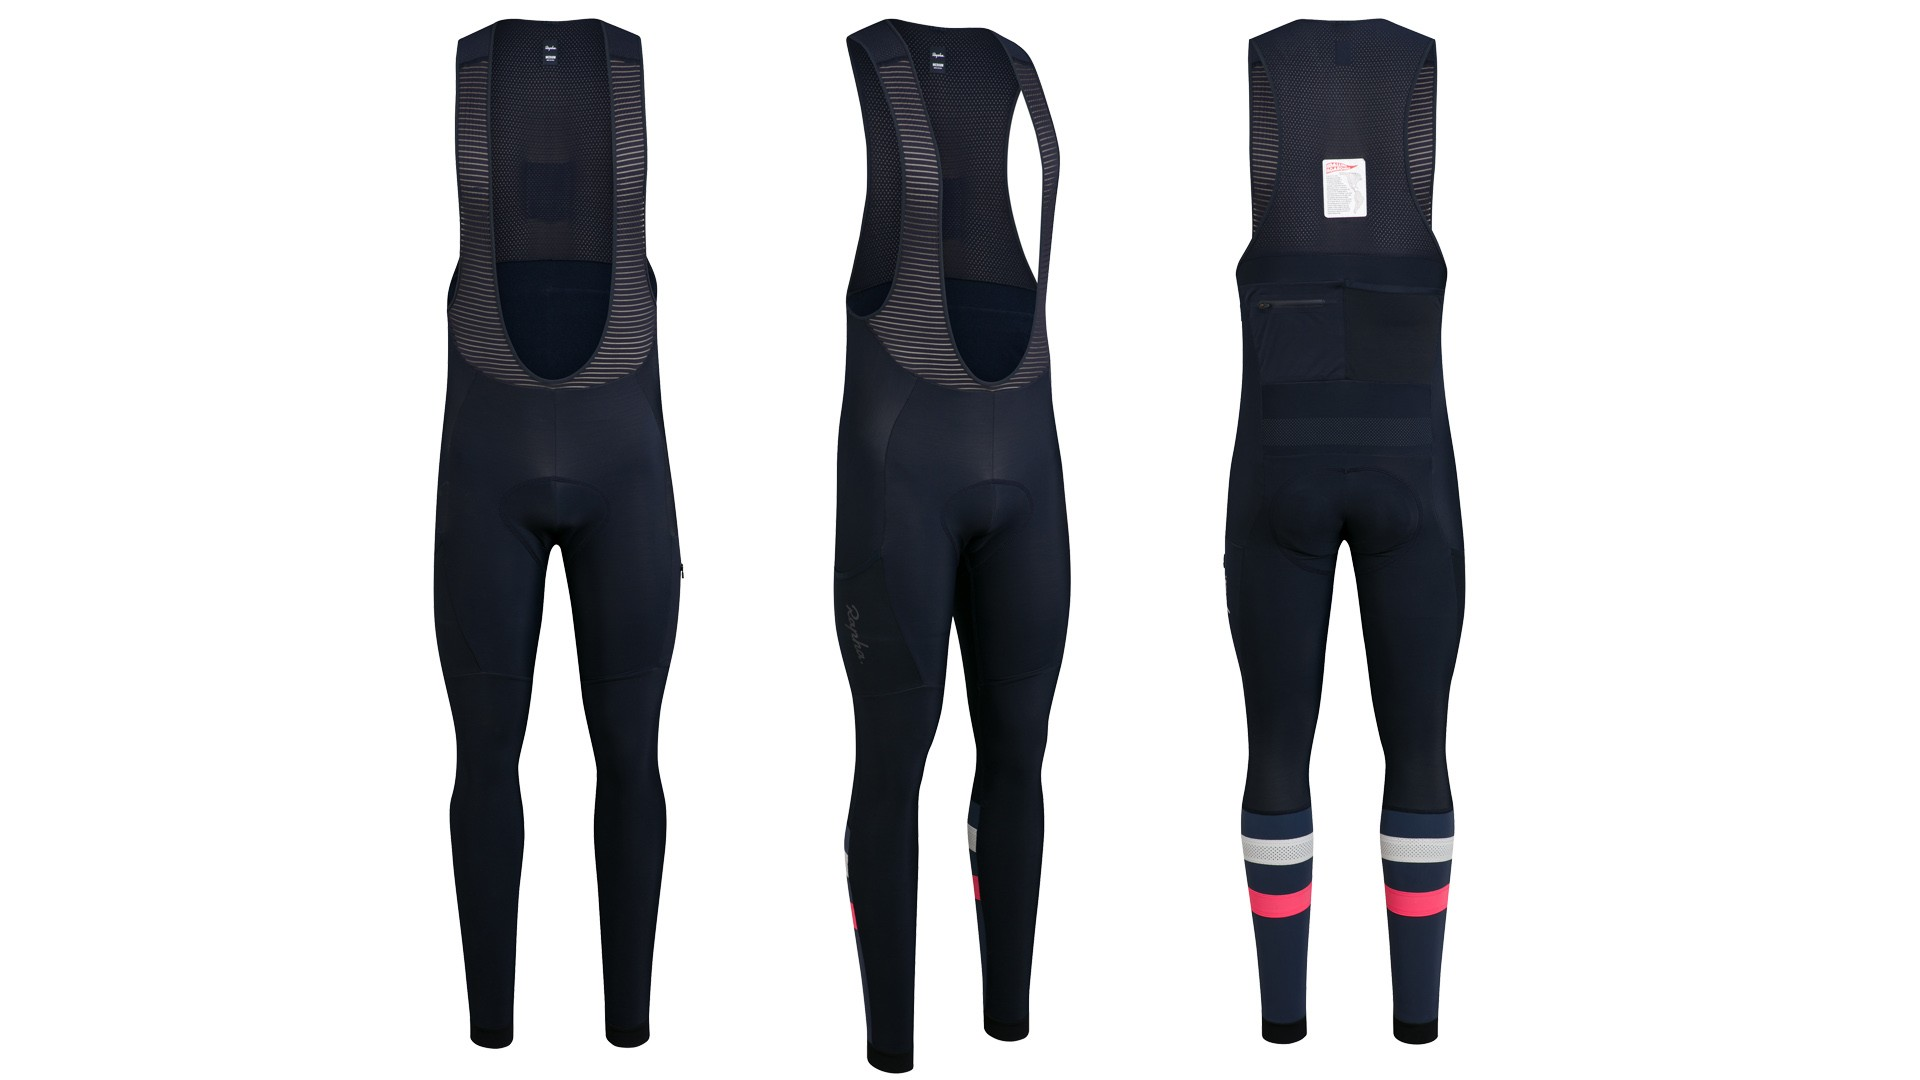 For warmth when exploring in winter, the Cargo Tights have a fleece lining